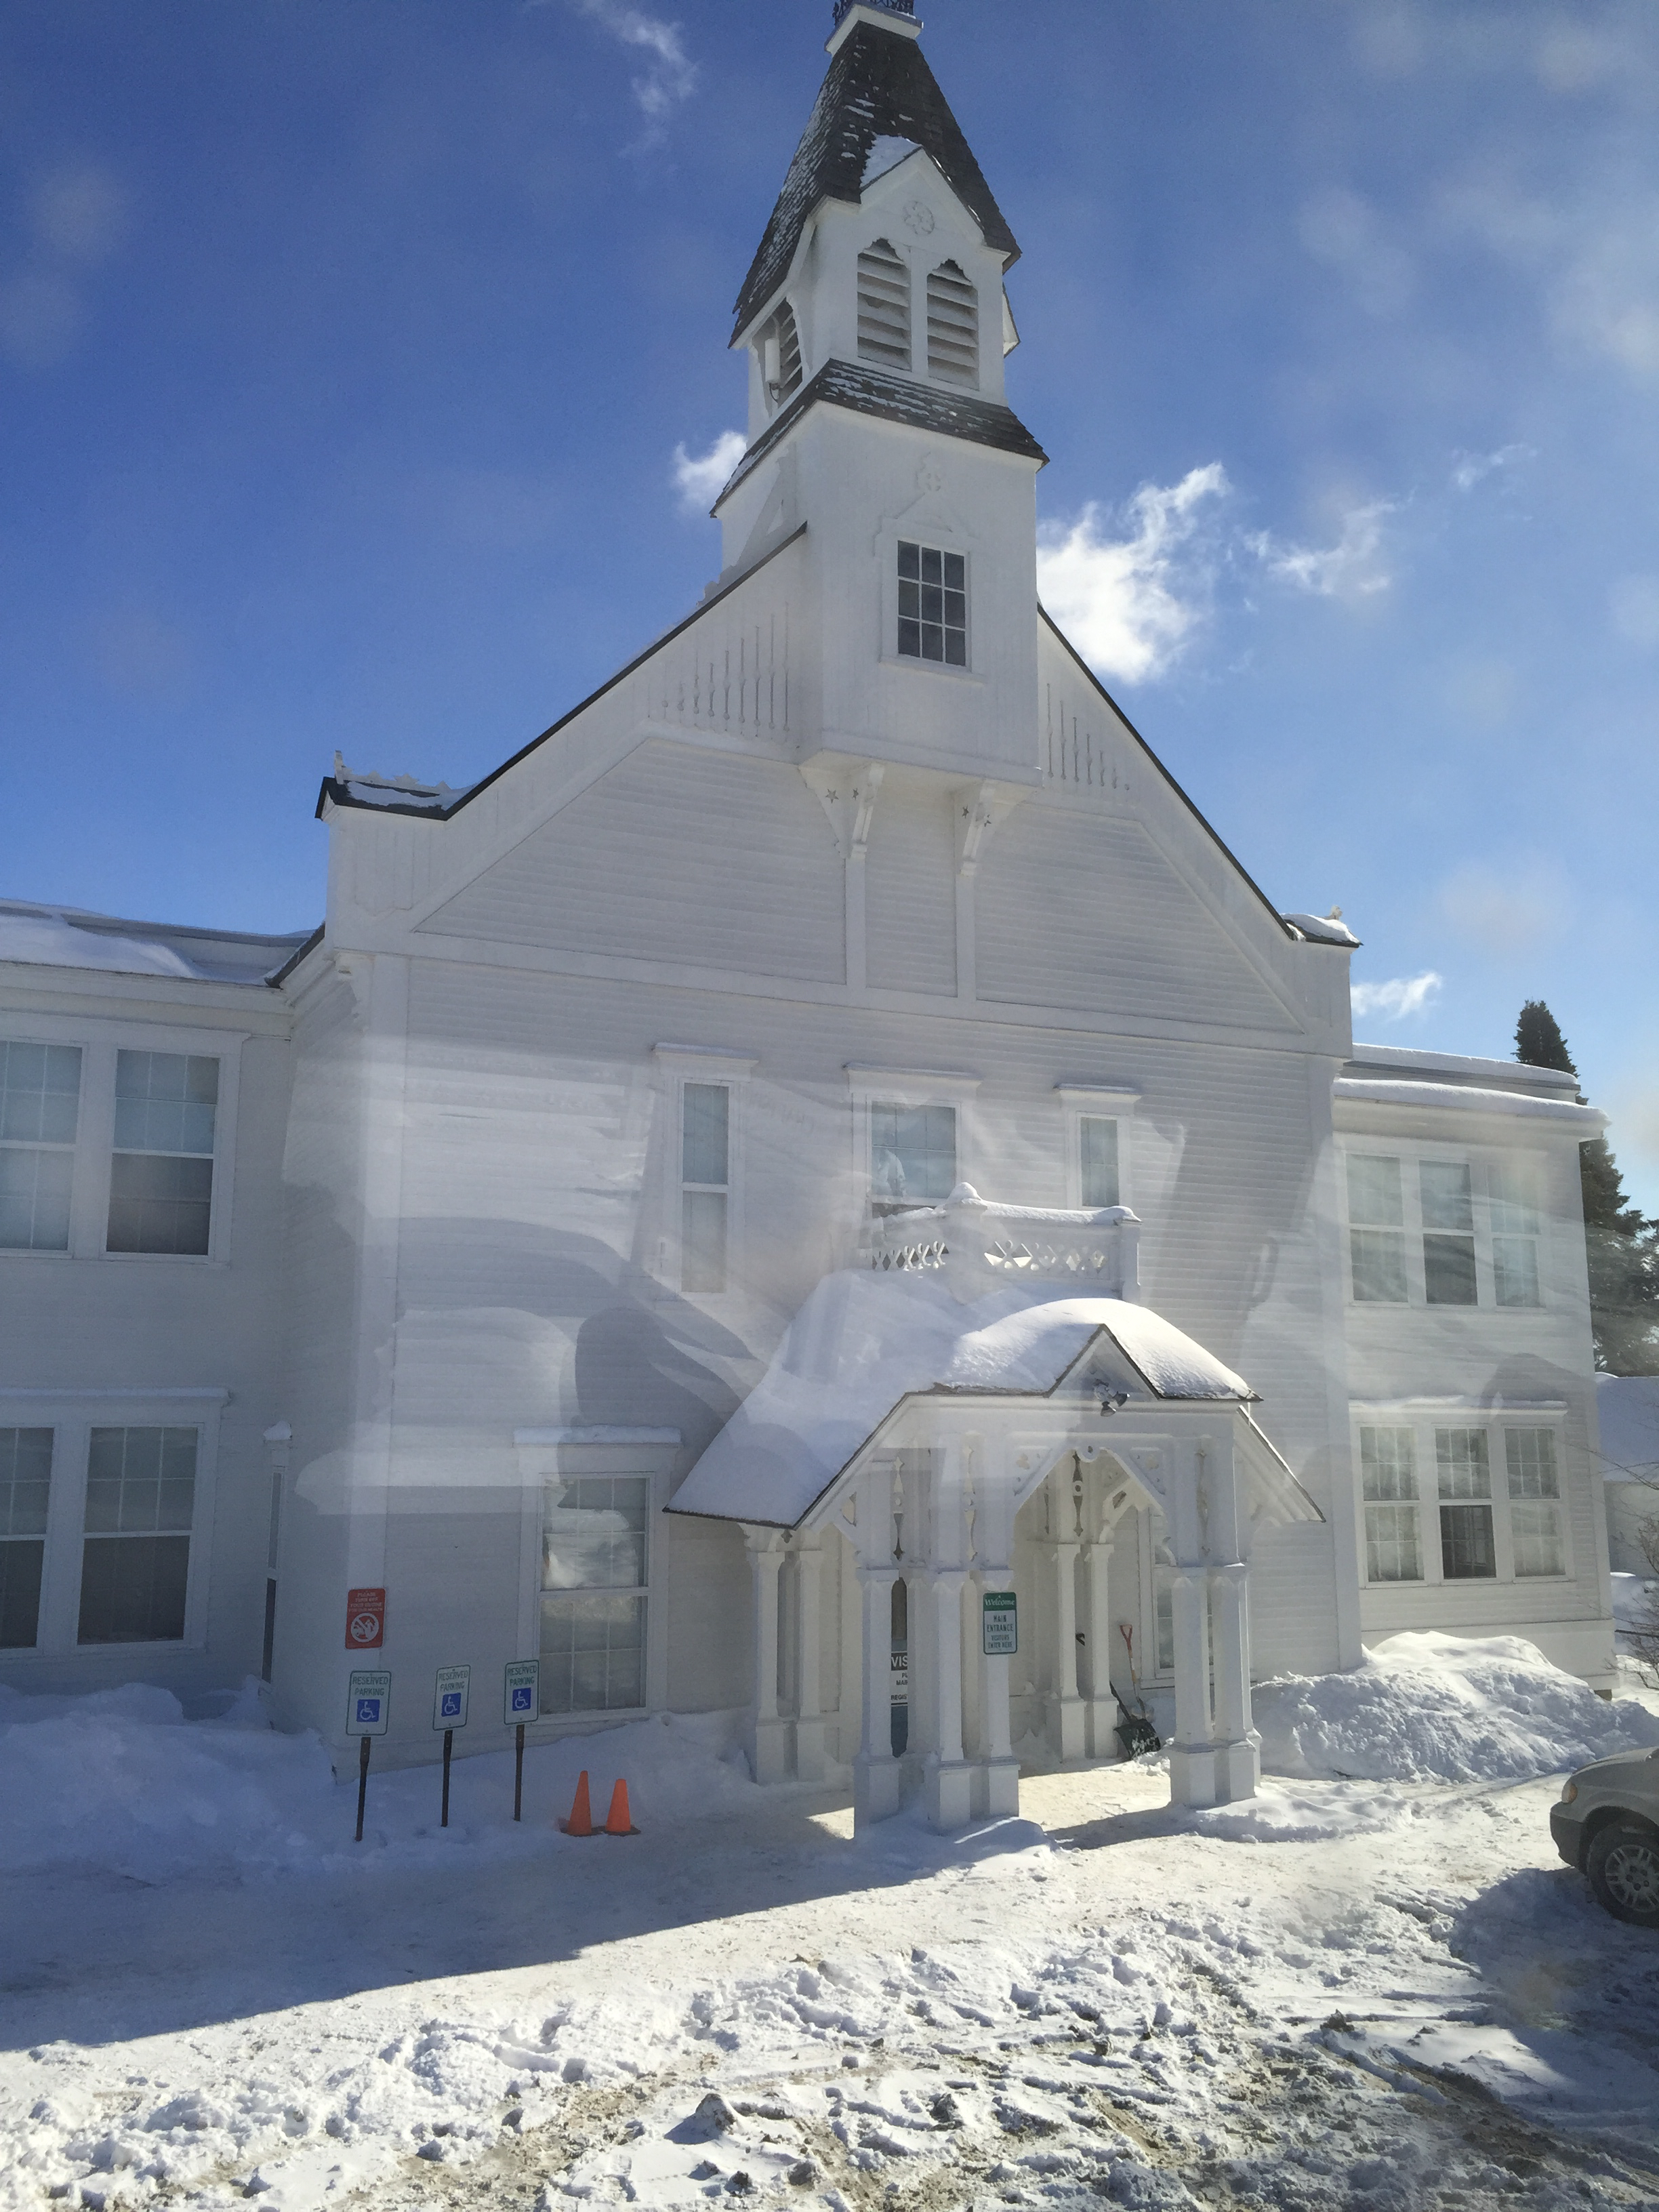 Craftsbury Common Craftsbury Academy